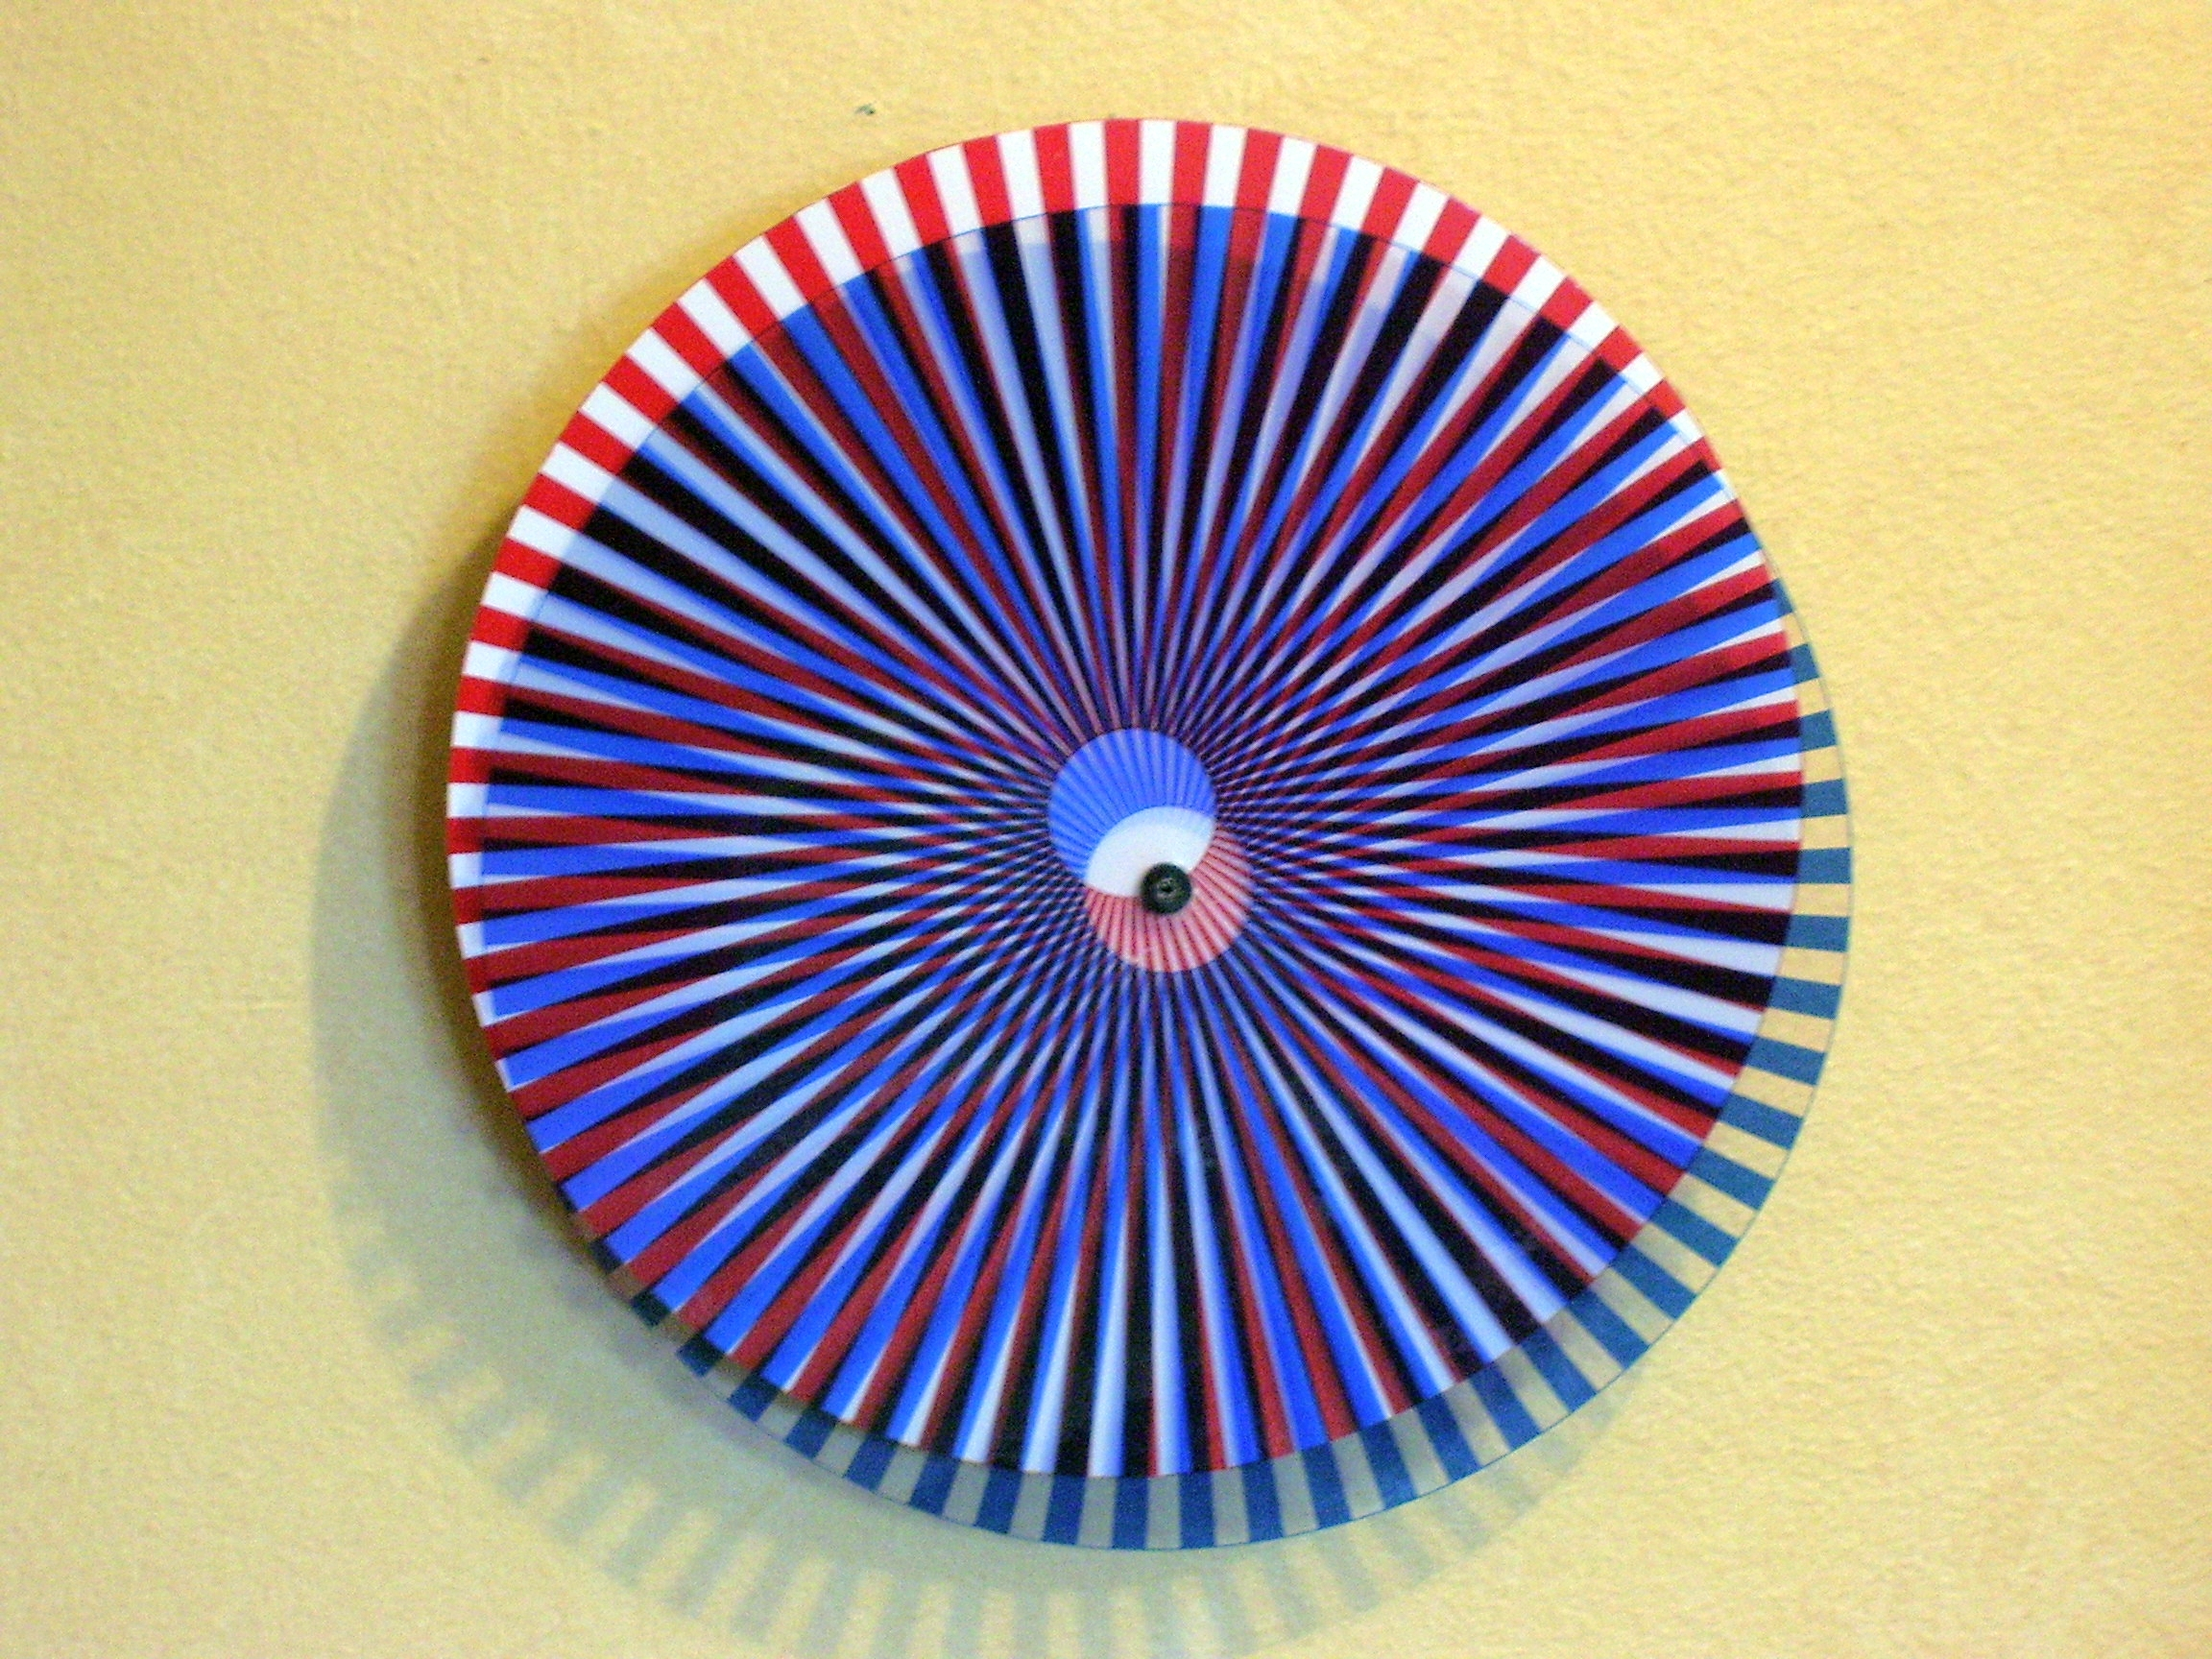 Repurposed - Clock into Kinetic Wall Art